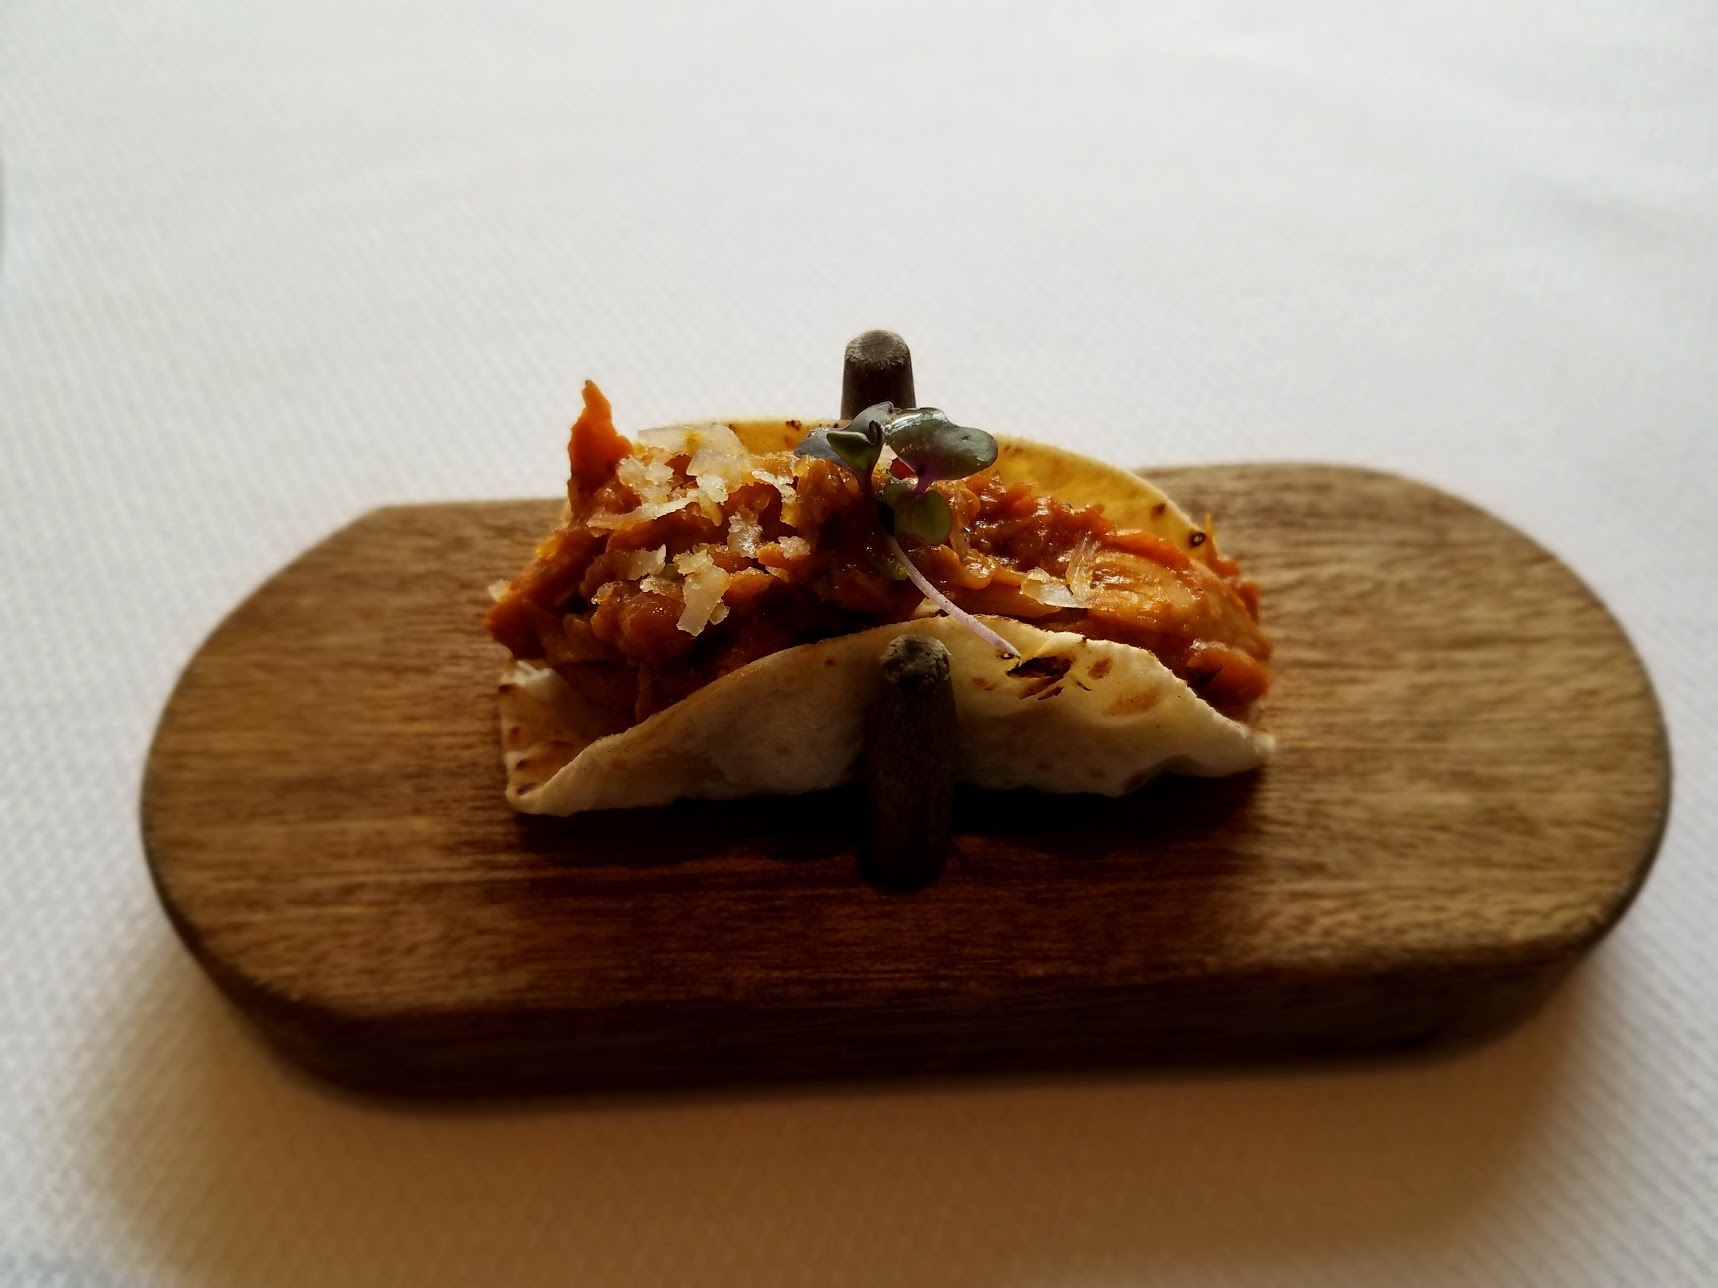 Indian Accent's Indian take on a Mexican taco.